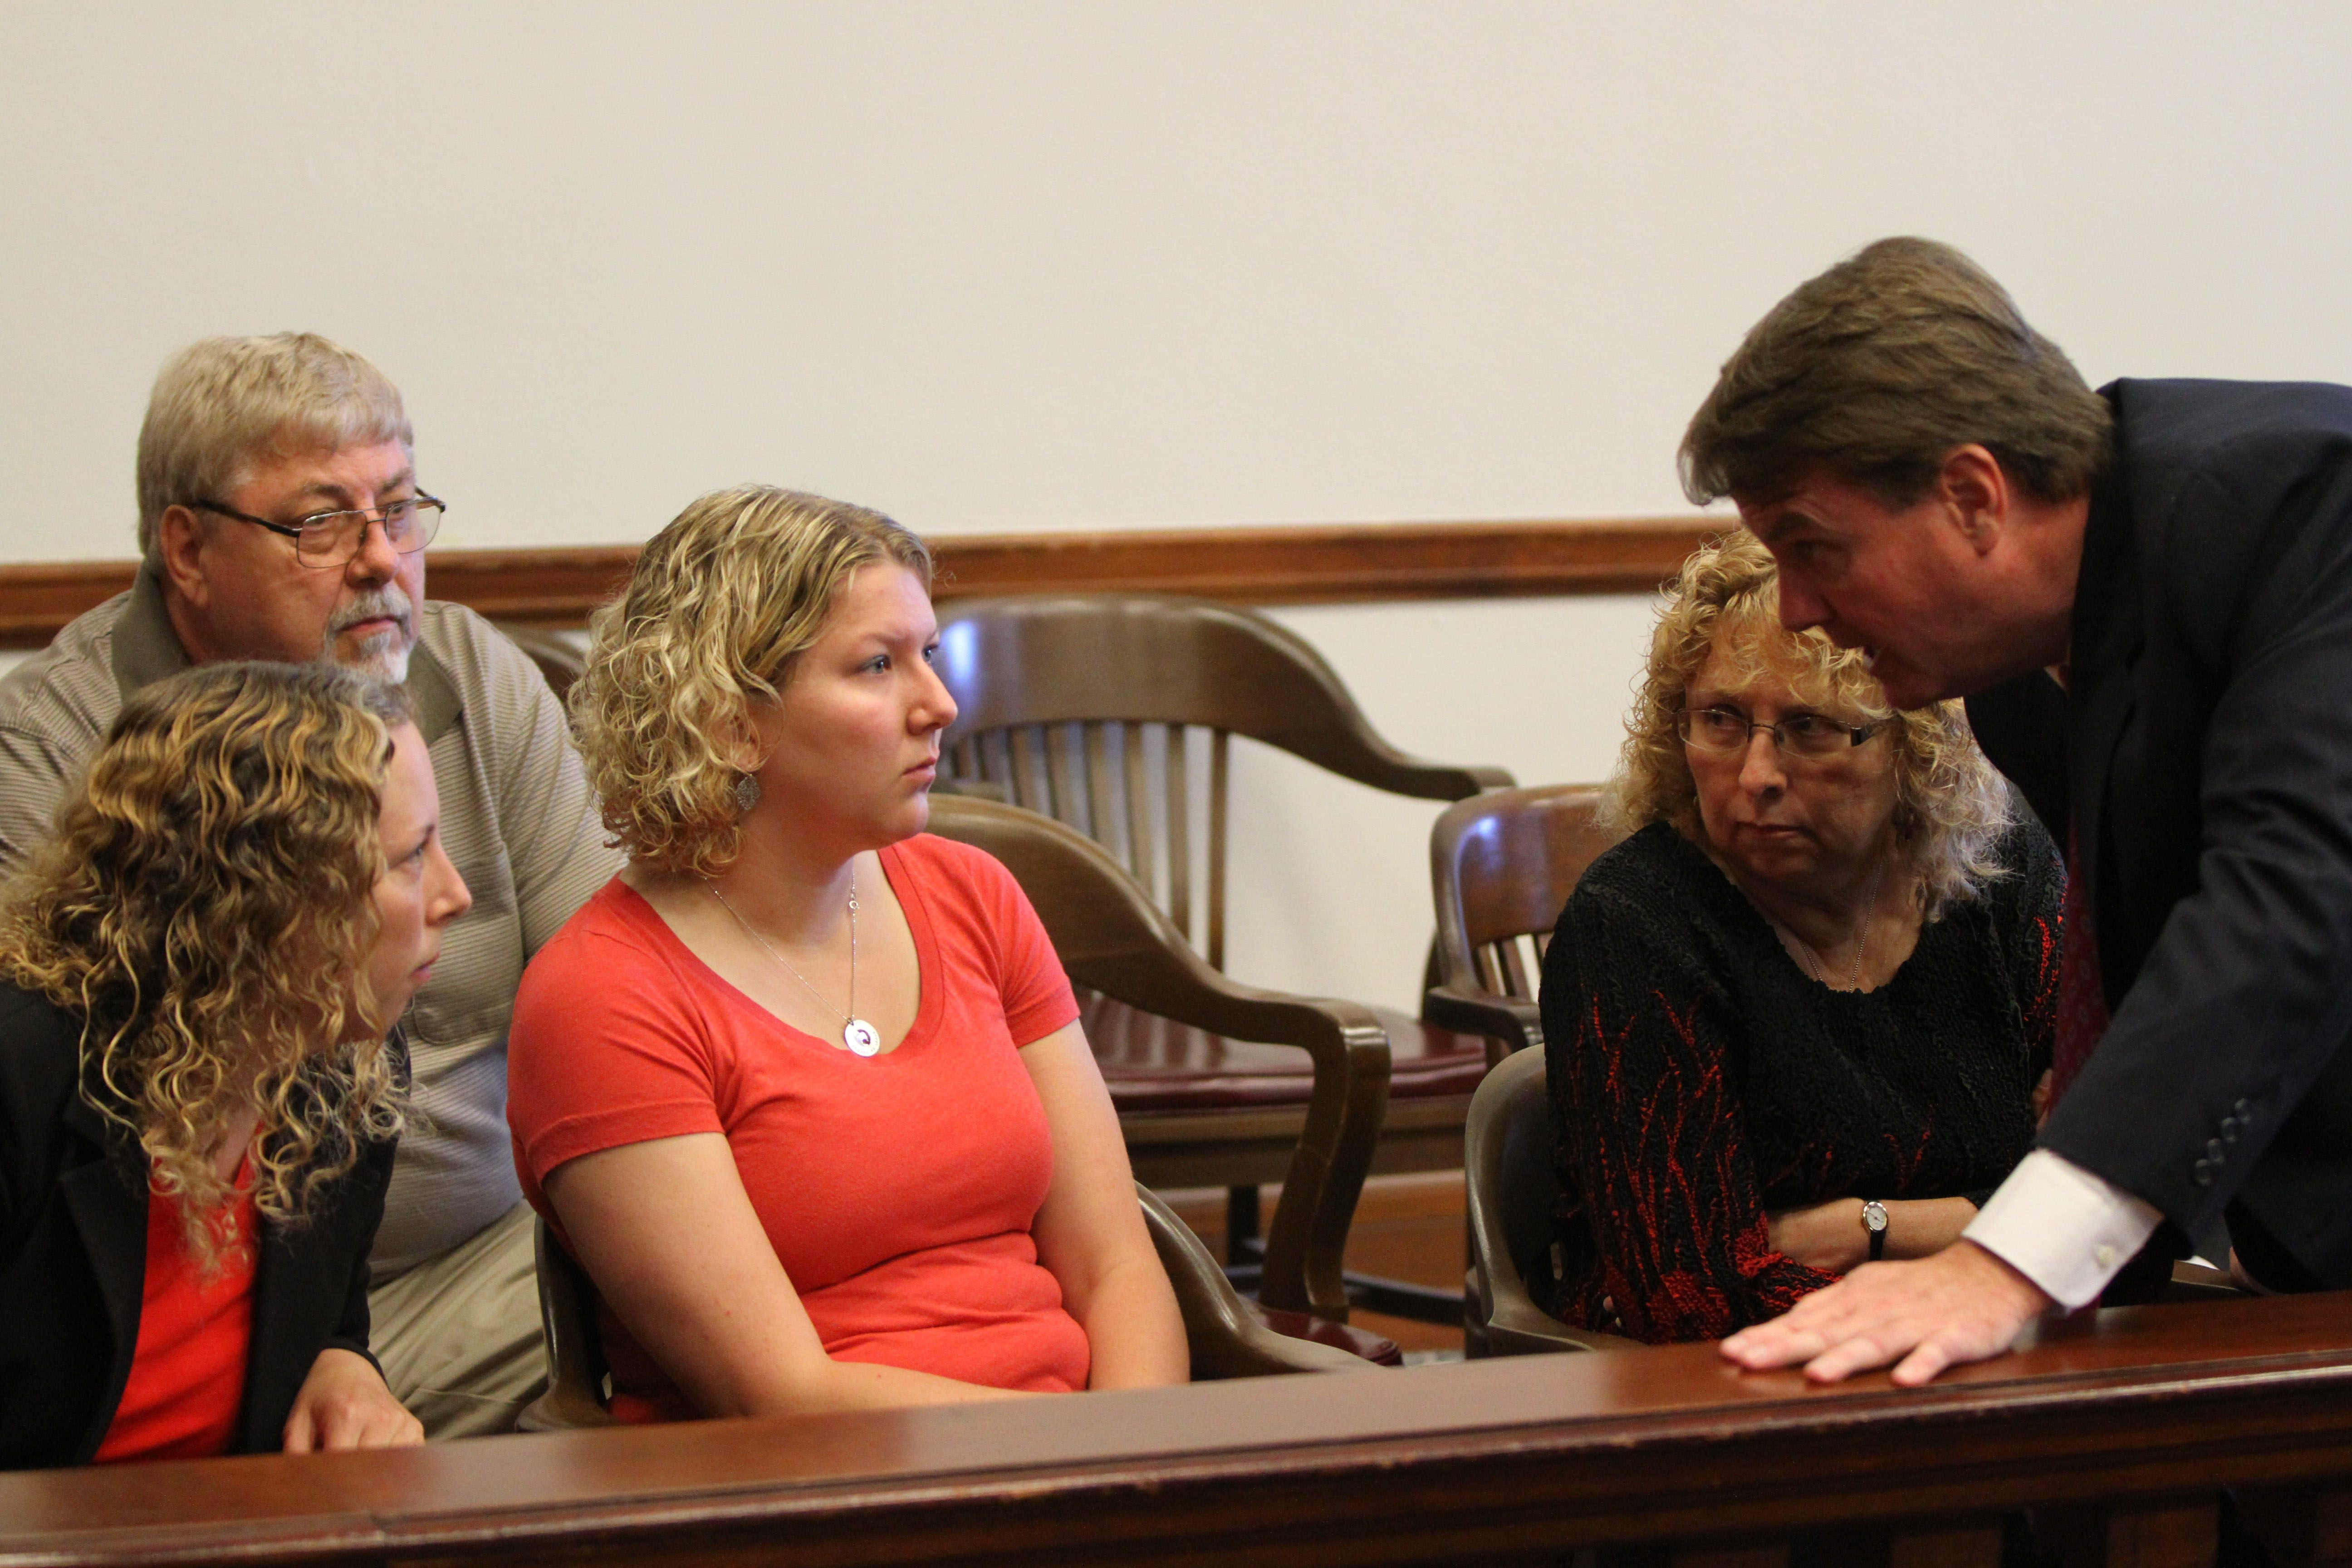 Attorney Philipp L. Rimmler speaks with Karen Wielinski, right, and her daughters, Jill Hohl, center, and Kimberly Lipiarz, in the courtroom before Tuesday's hearing. Bill Wielinski, Douglas C. Wielinski's brother, is in the background. (Mark Mulville/Buffalo News)